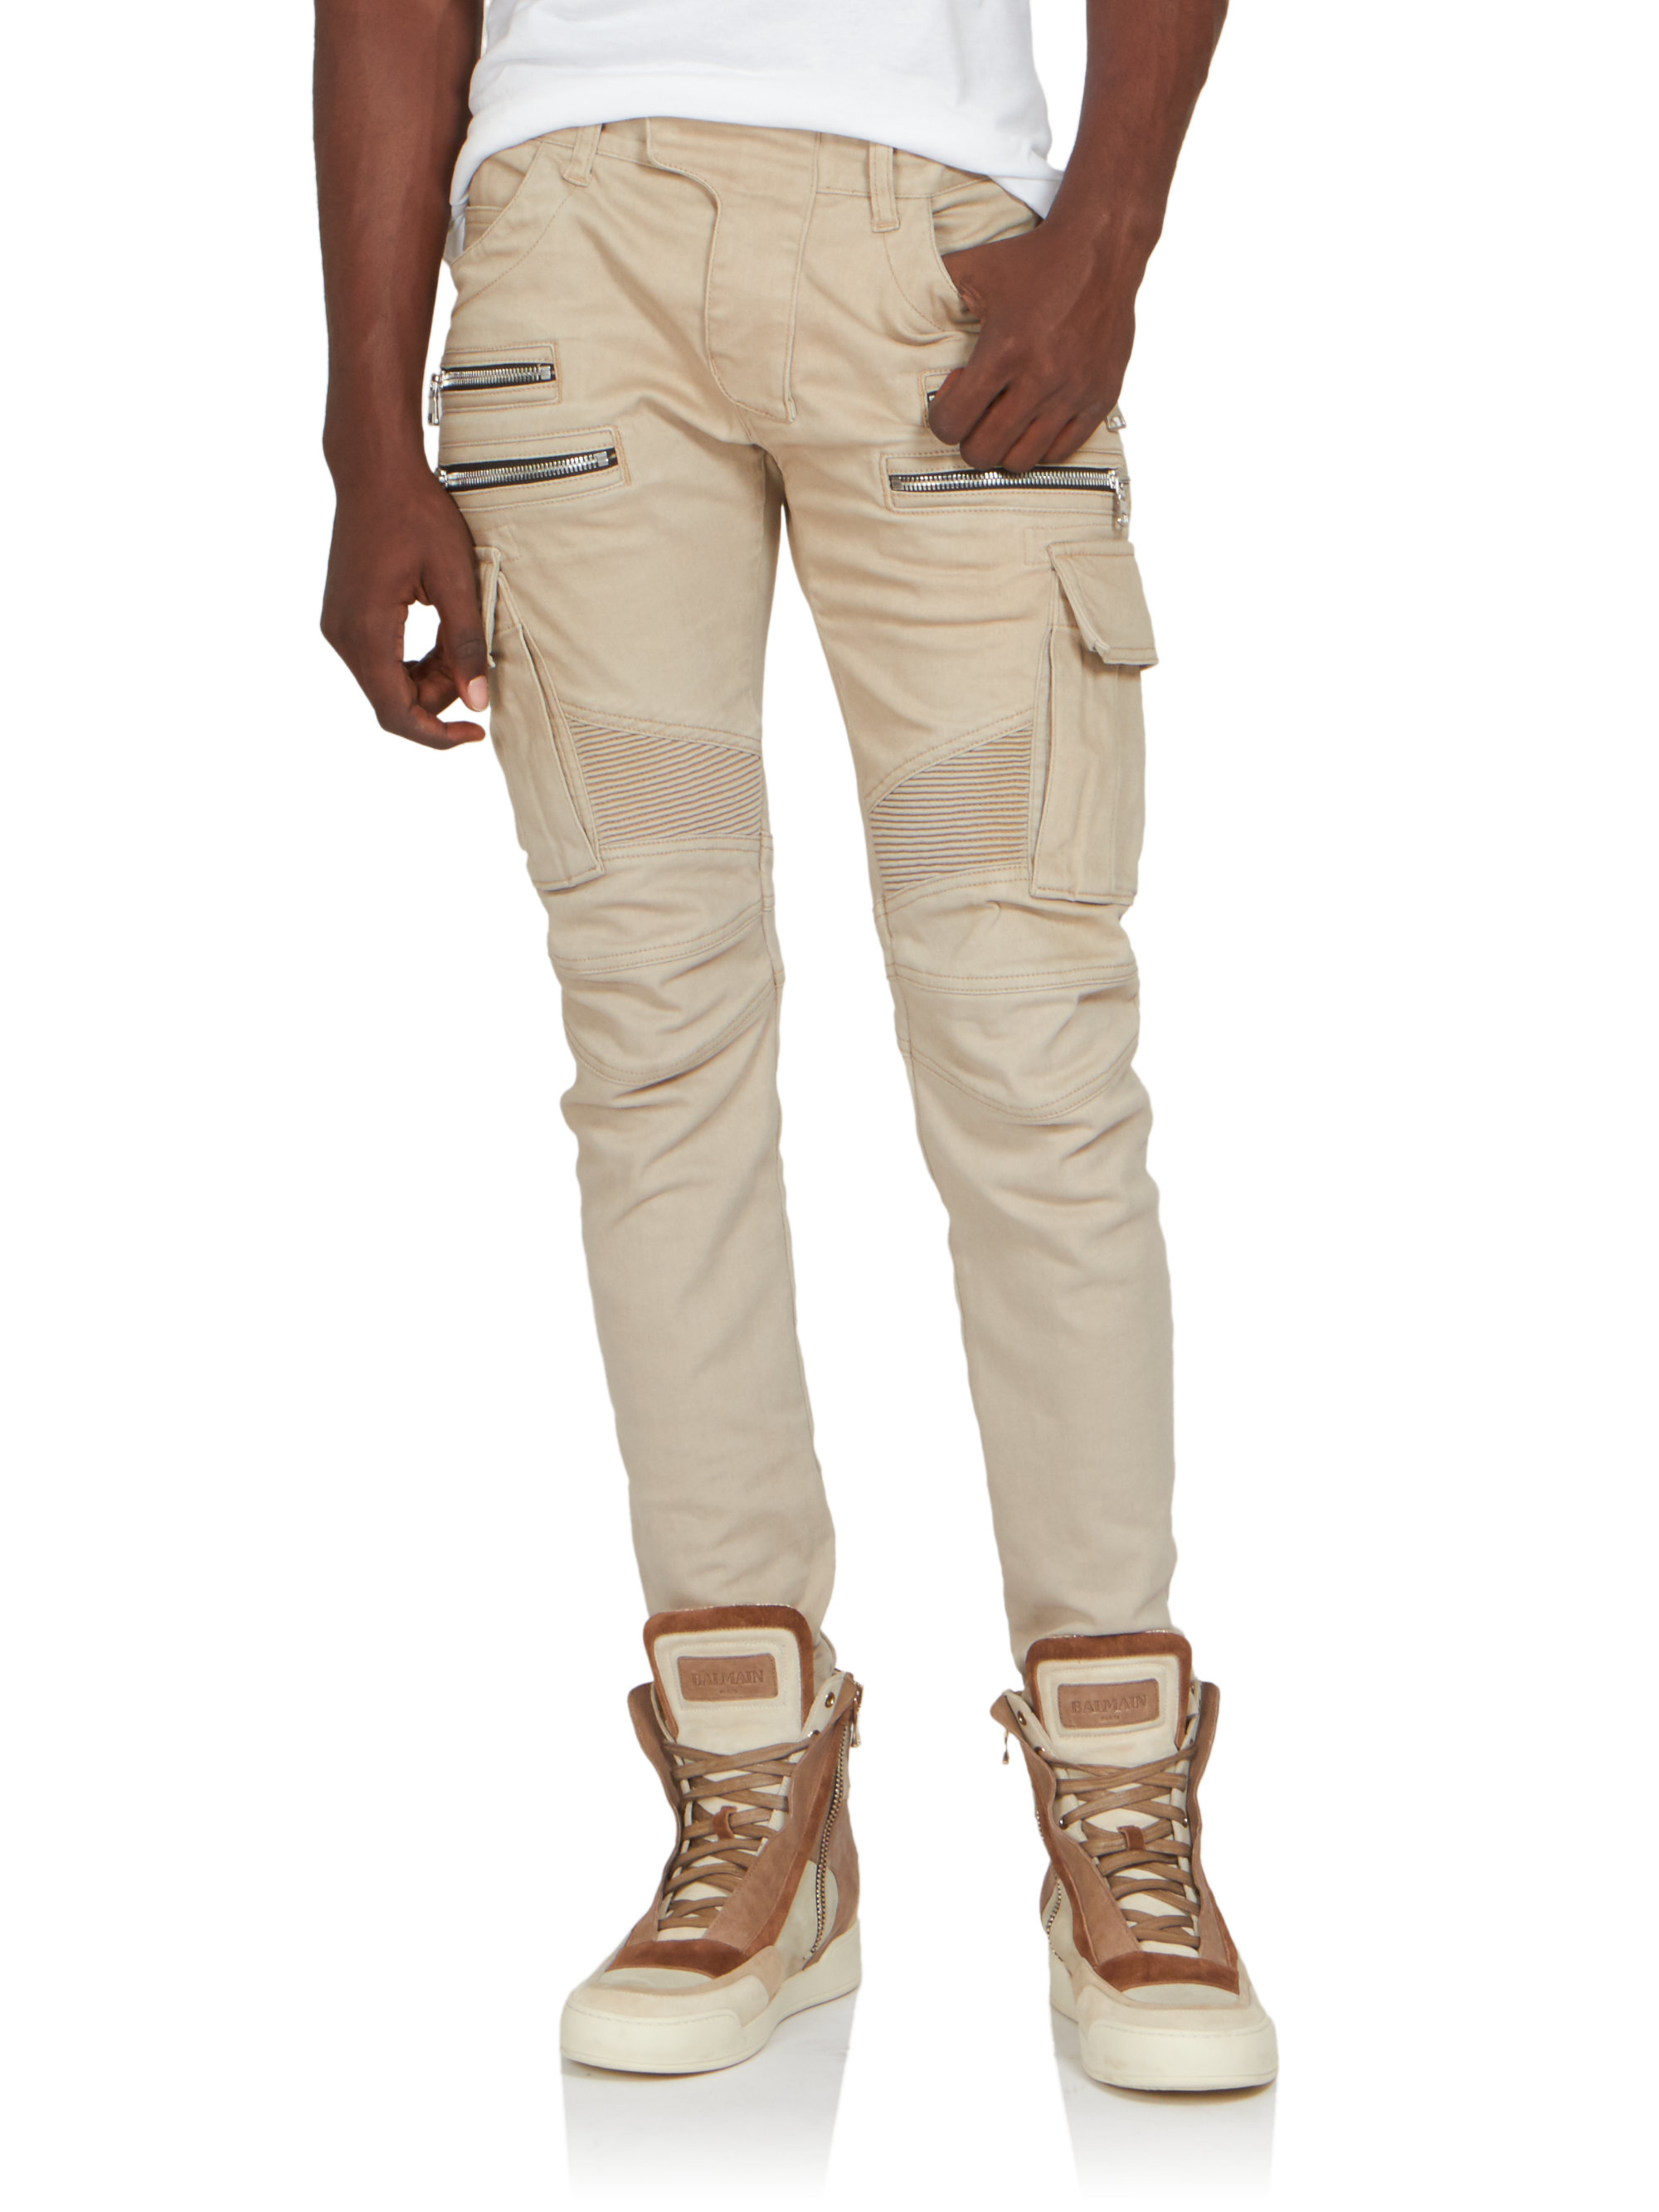 Balmain Biker Cargo Pants in Natural for Men  Lyst